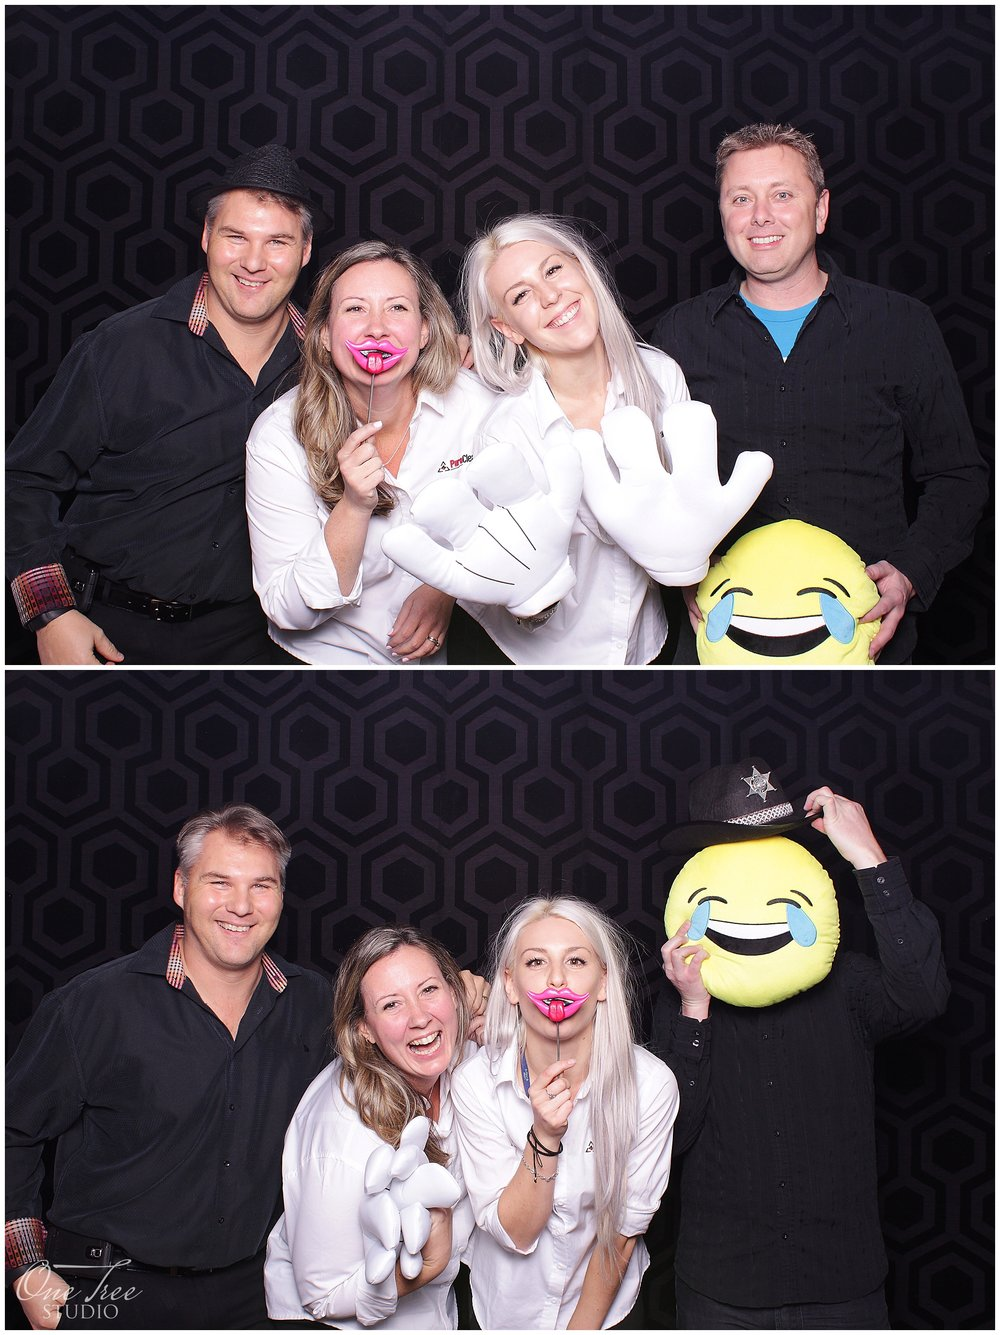 Toronto Photo Booth | Niagara Photo Booth | One Tree Studio Booth